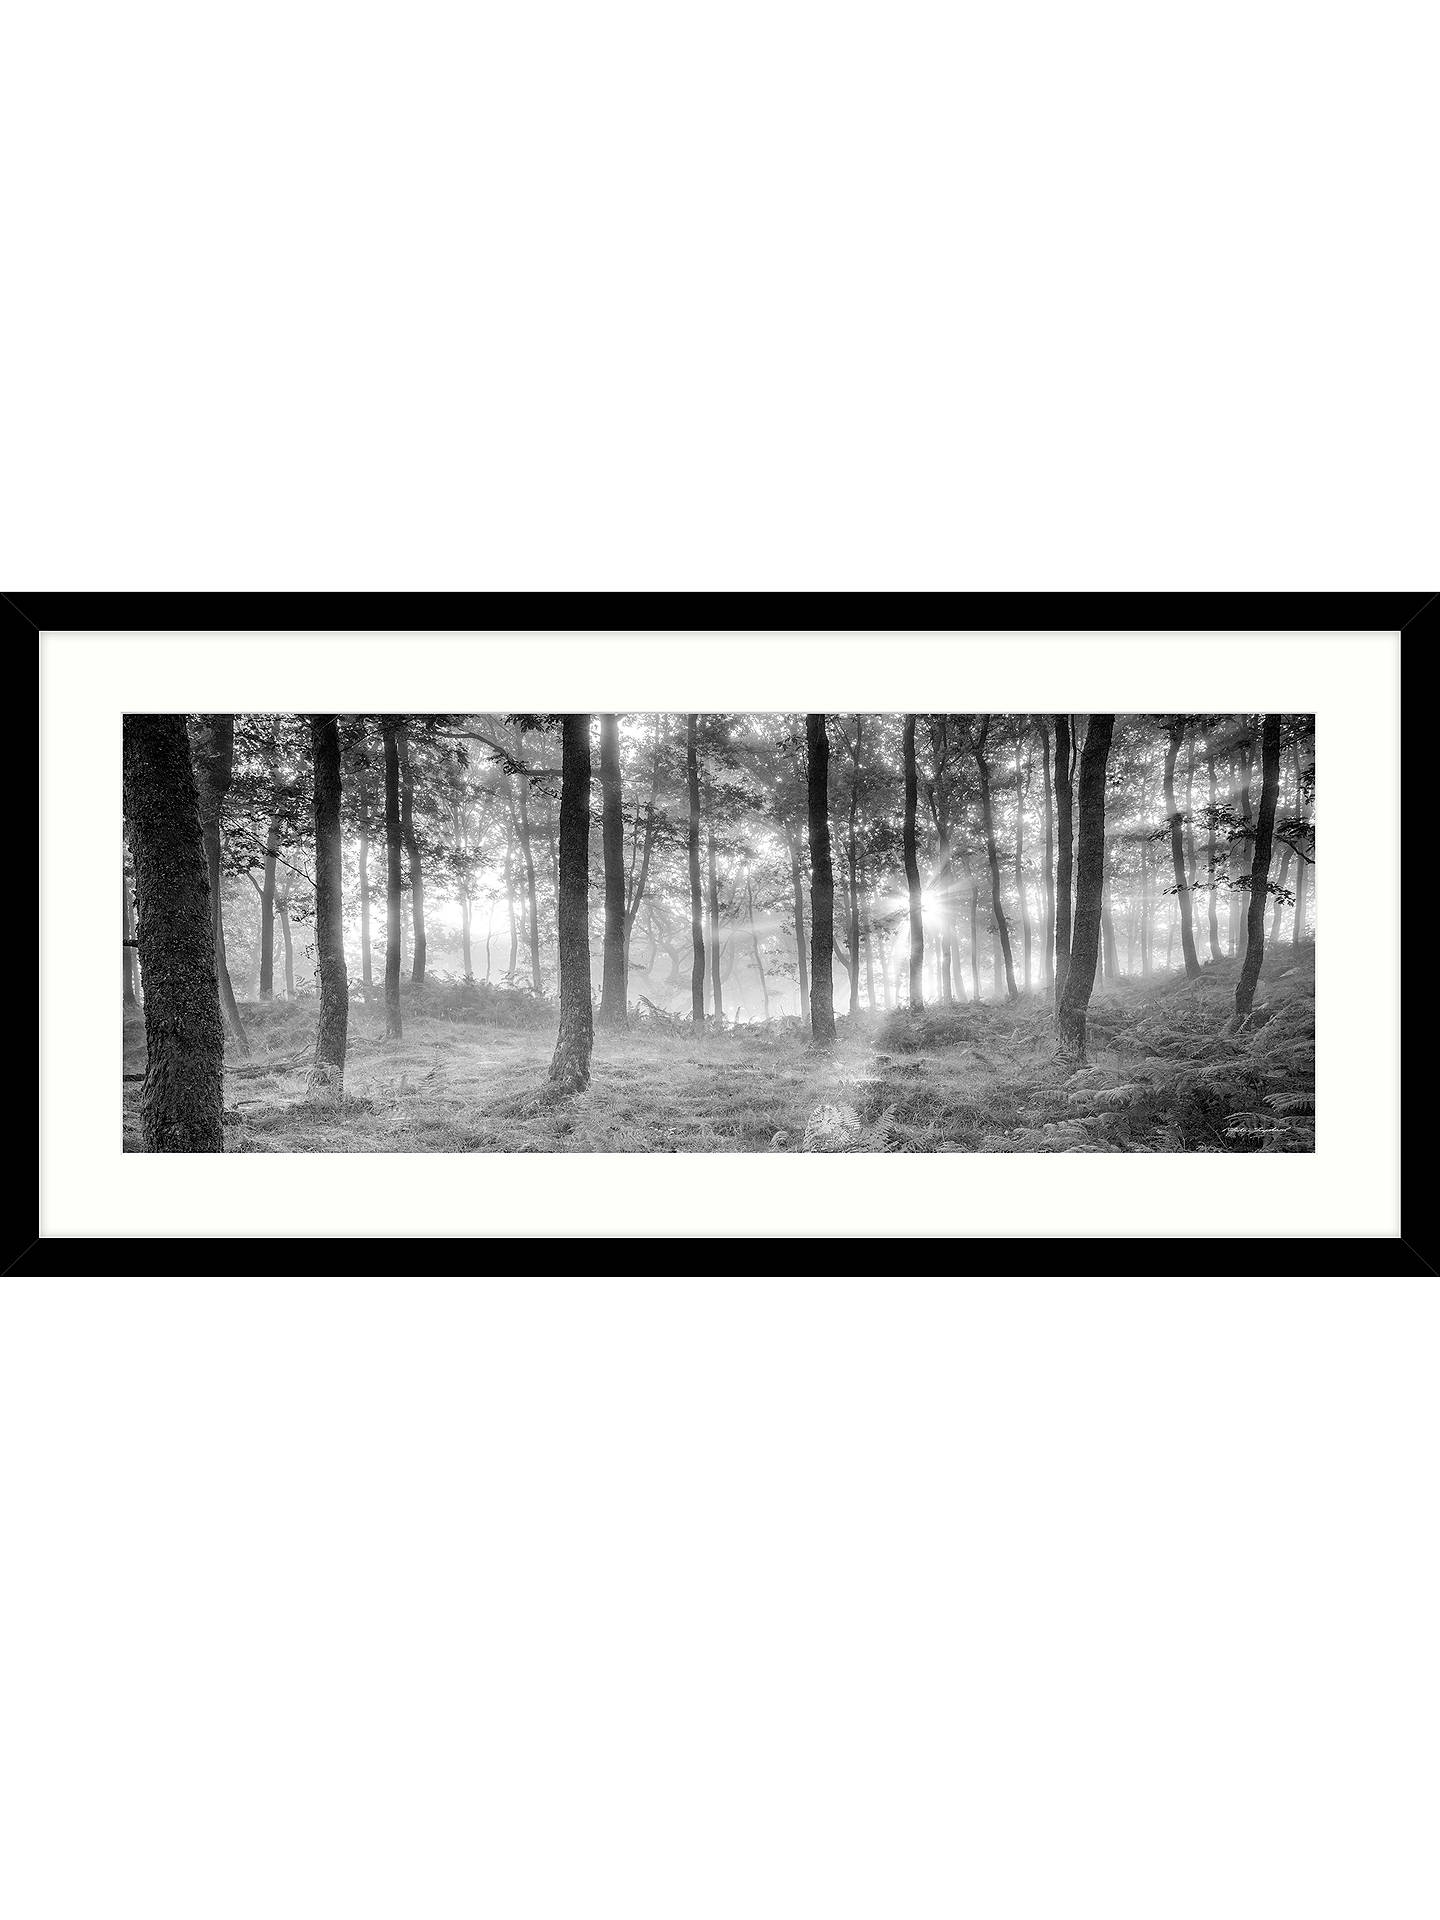 Mike Shepherd - Misty Trees Framed Print & Mount, 49x 104cm at John ...